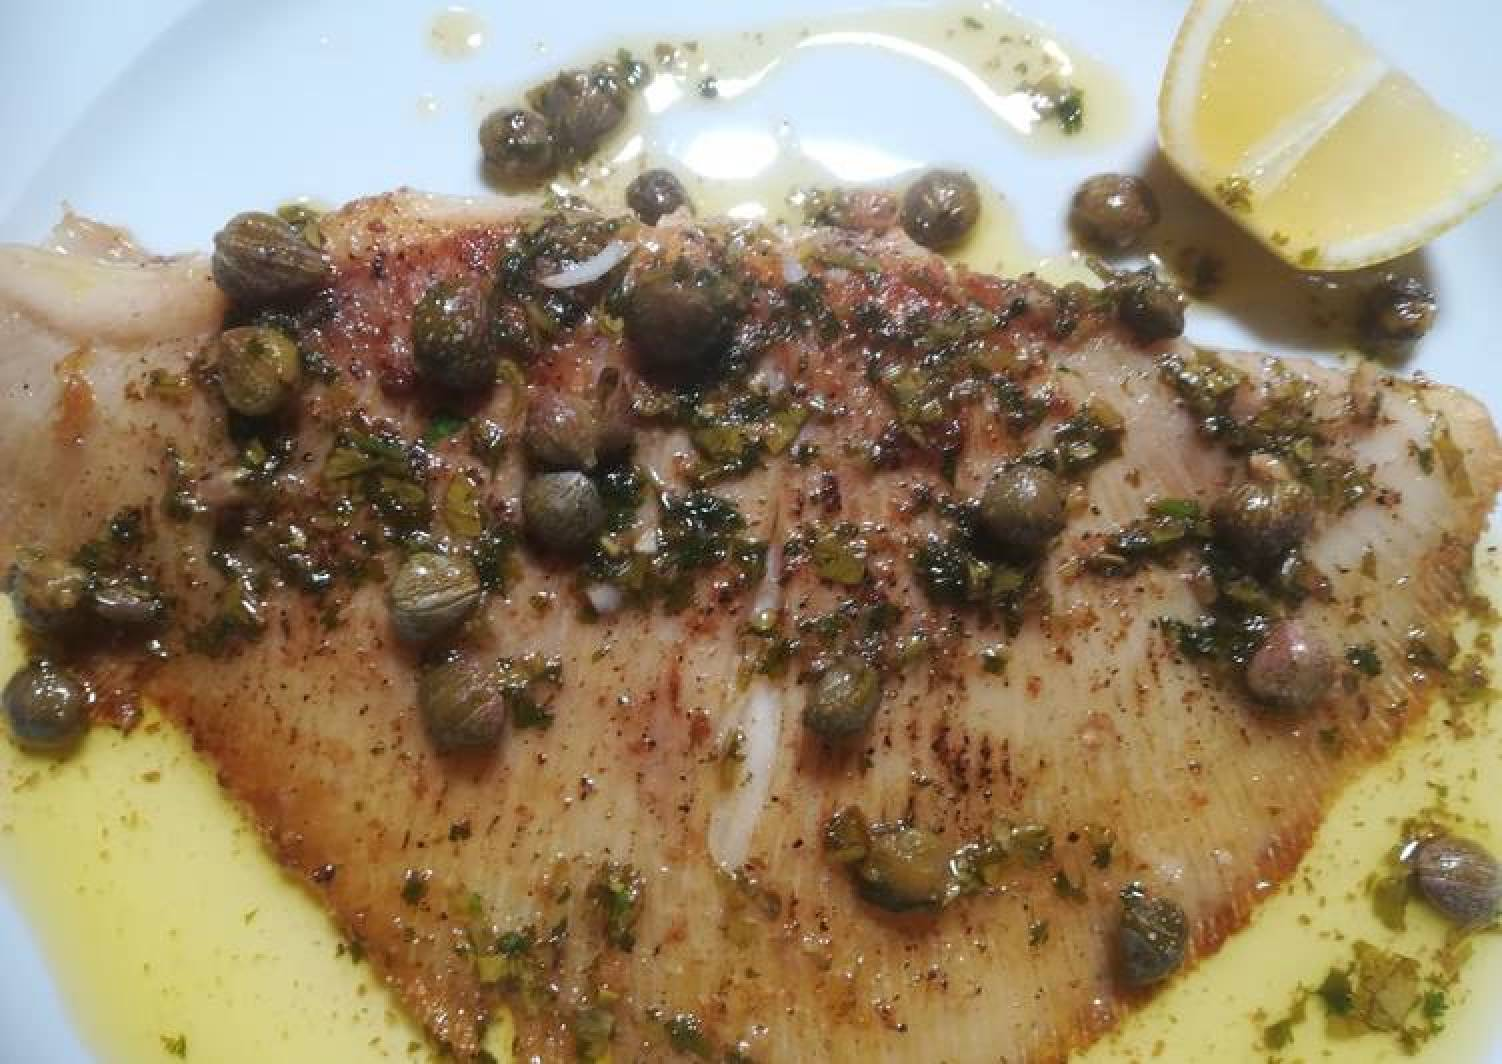 Skate wing with a brown butter and caper sauce